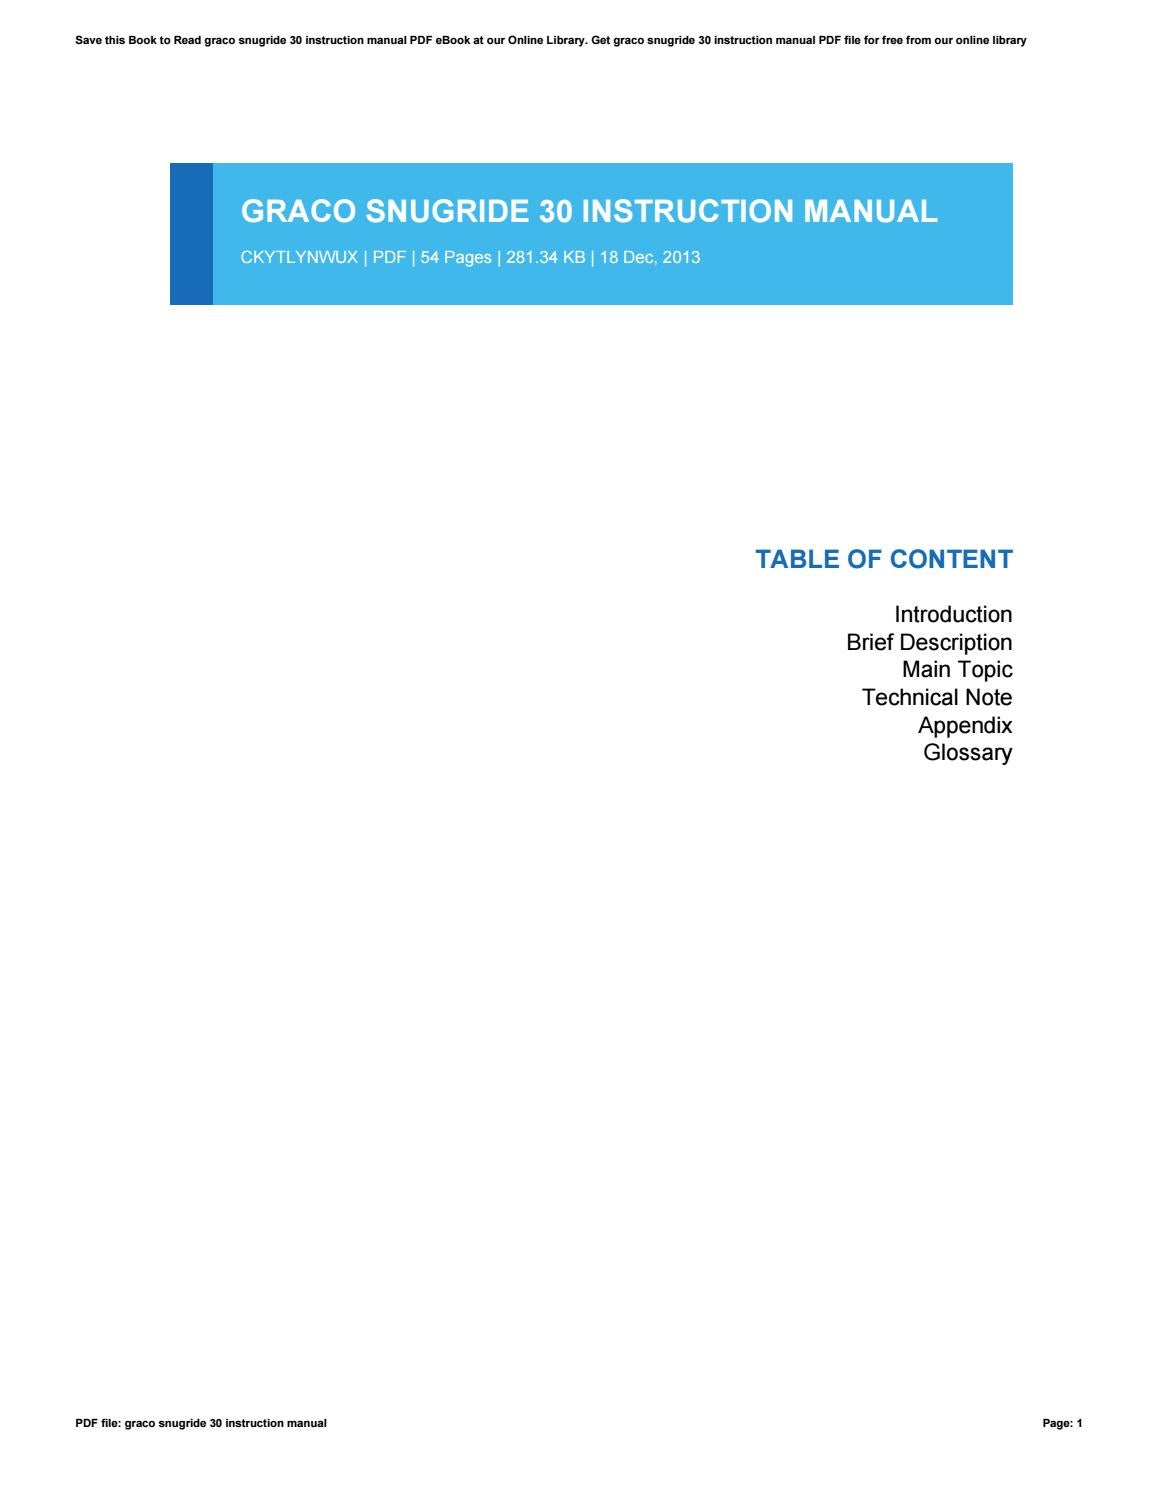 graco snugride 30 instruction manual by karenterrell1365 issuu rh issuu com Pink and Brown Graco Car Seat Graco Weathershield